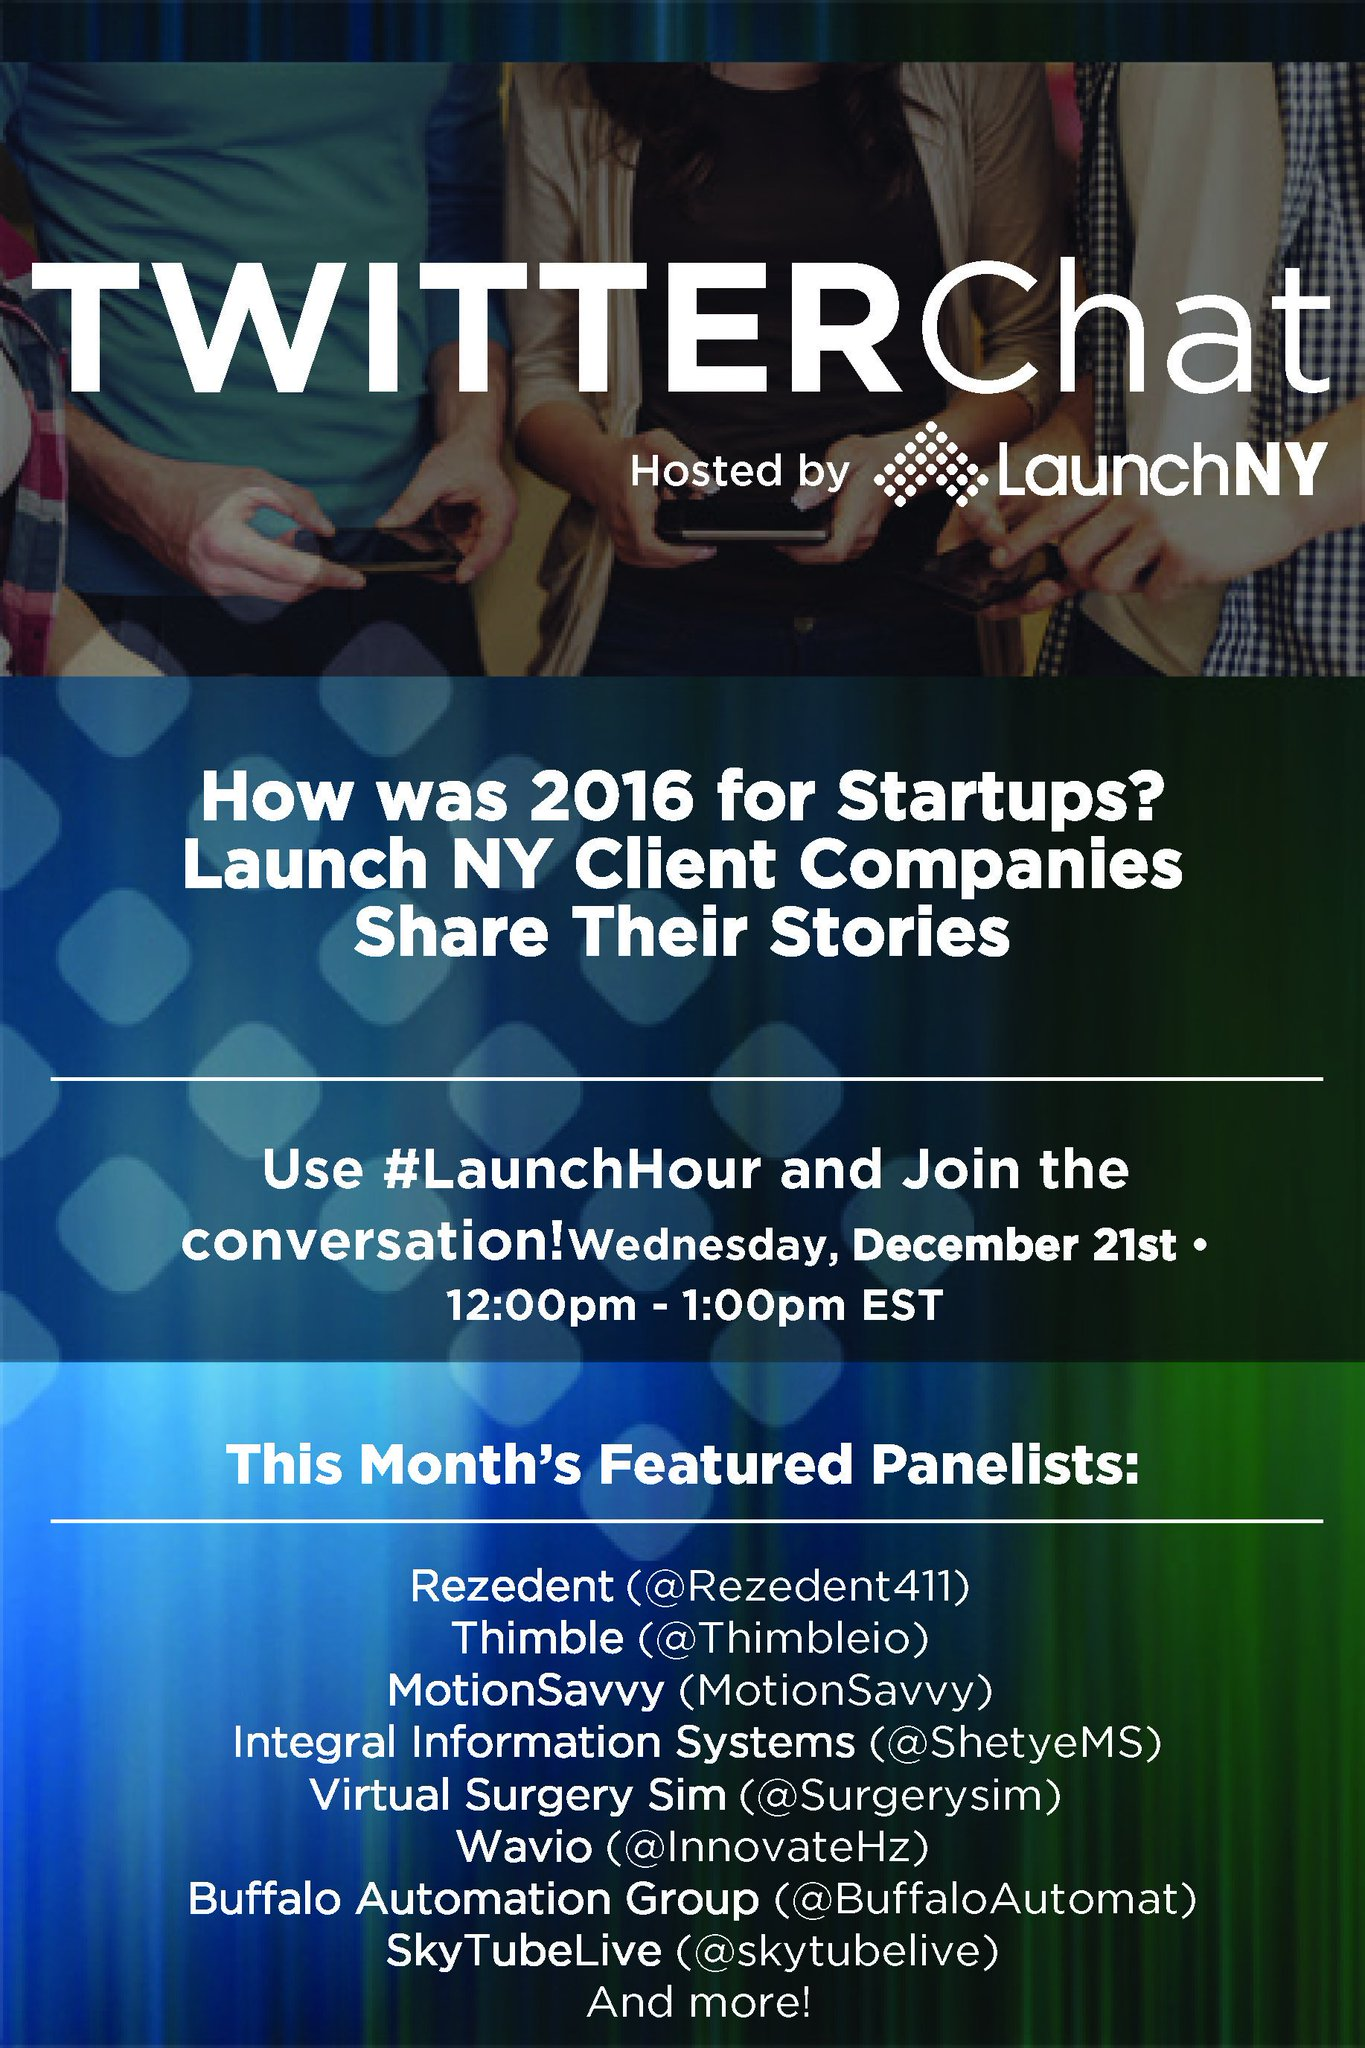 Don't forget #LaunchHour starts at noon today! https://t.co/JtwCyoqiv9